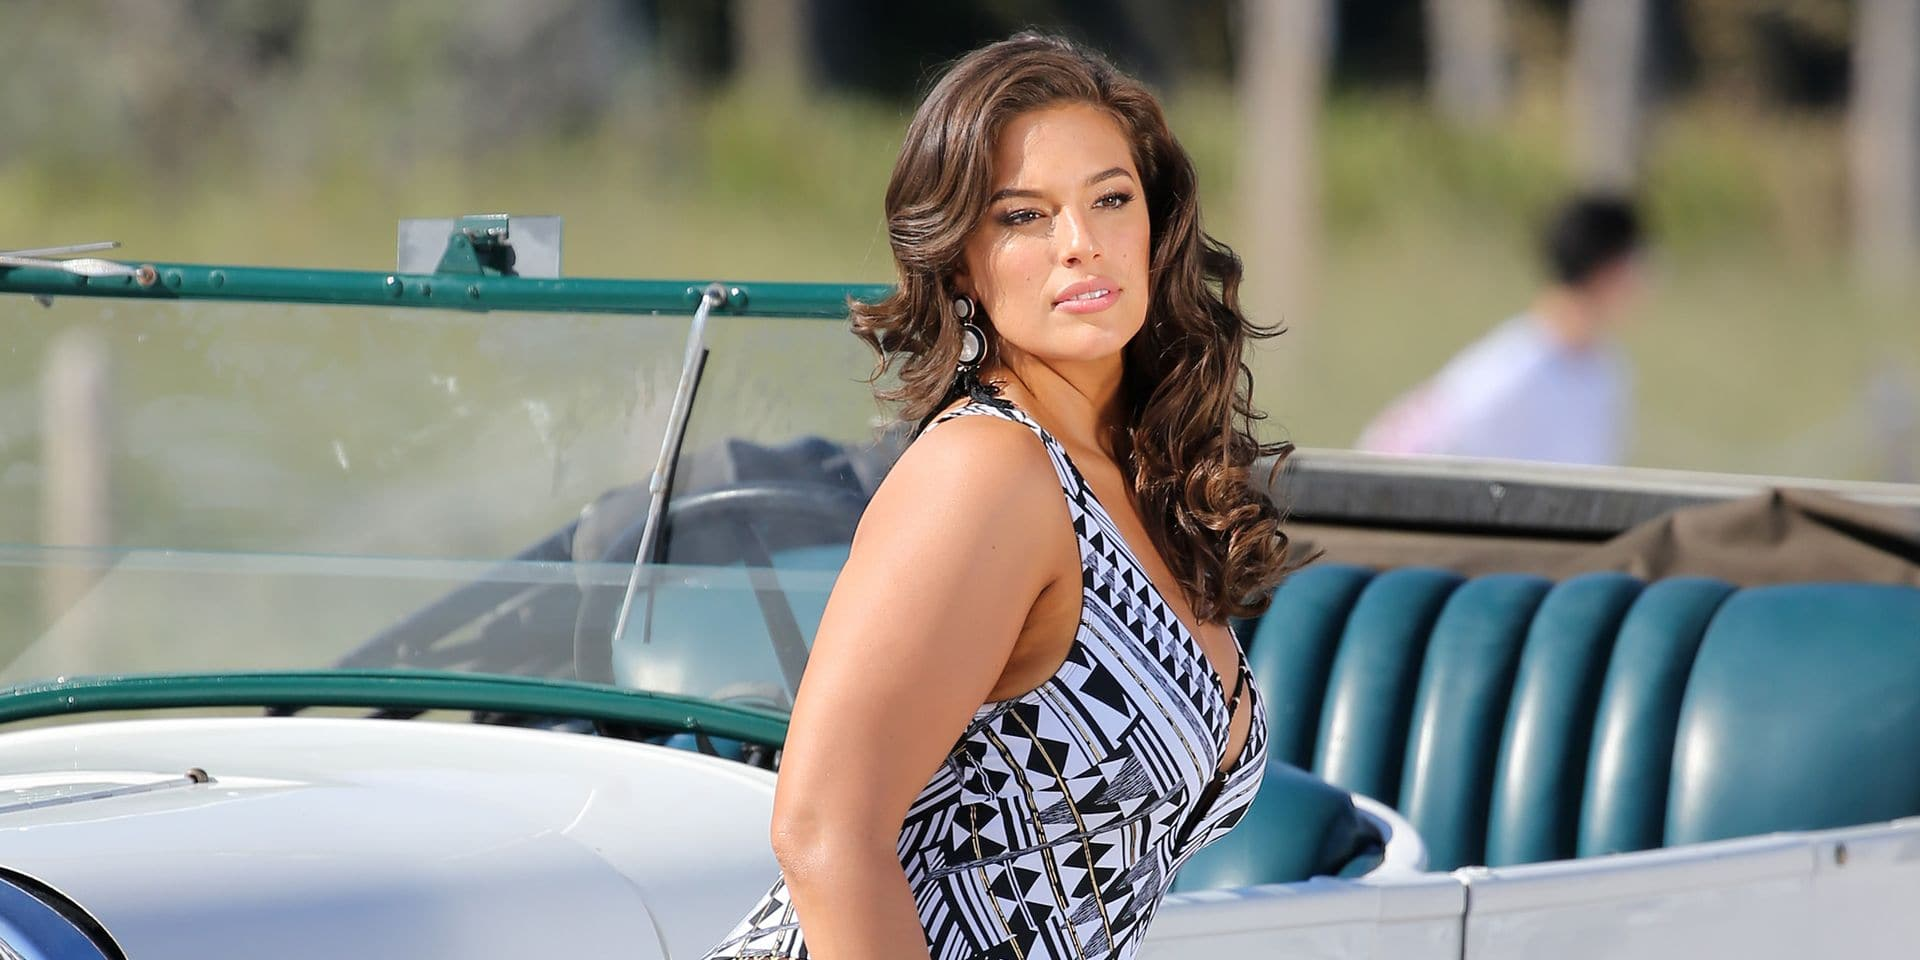 Ashley Graham: Des photos sans filtre pour sa nouvelle collection de mailots de bain